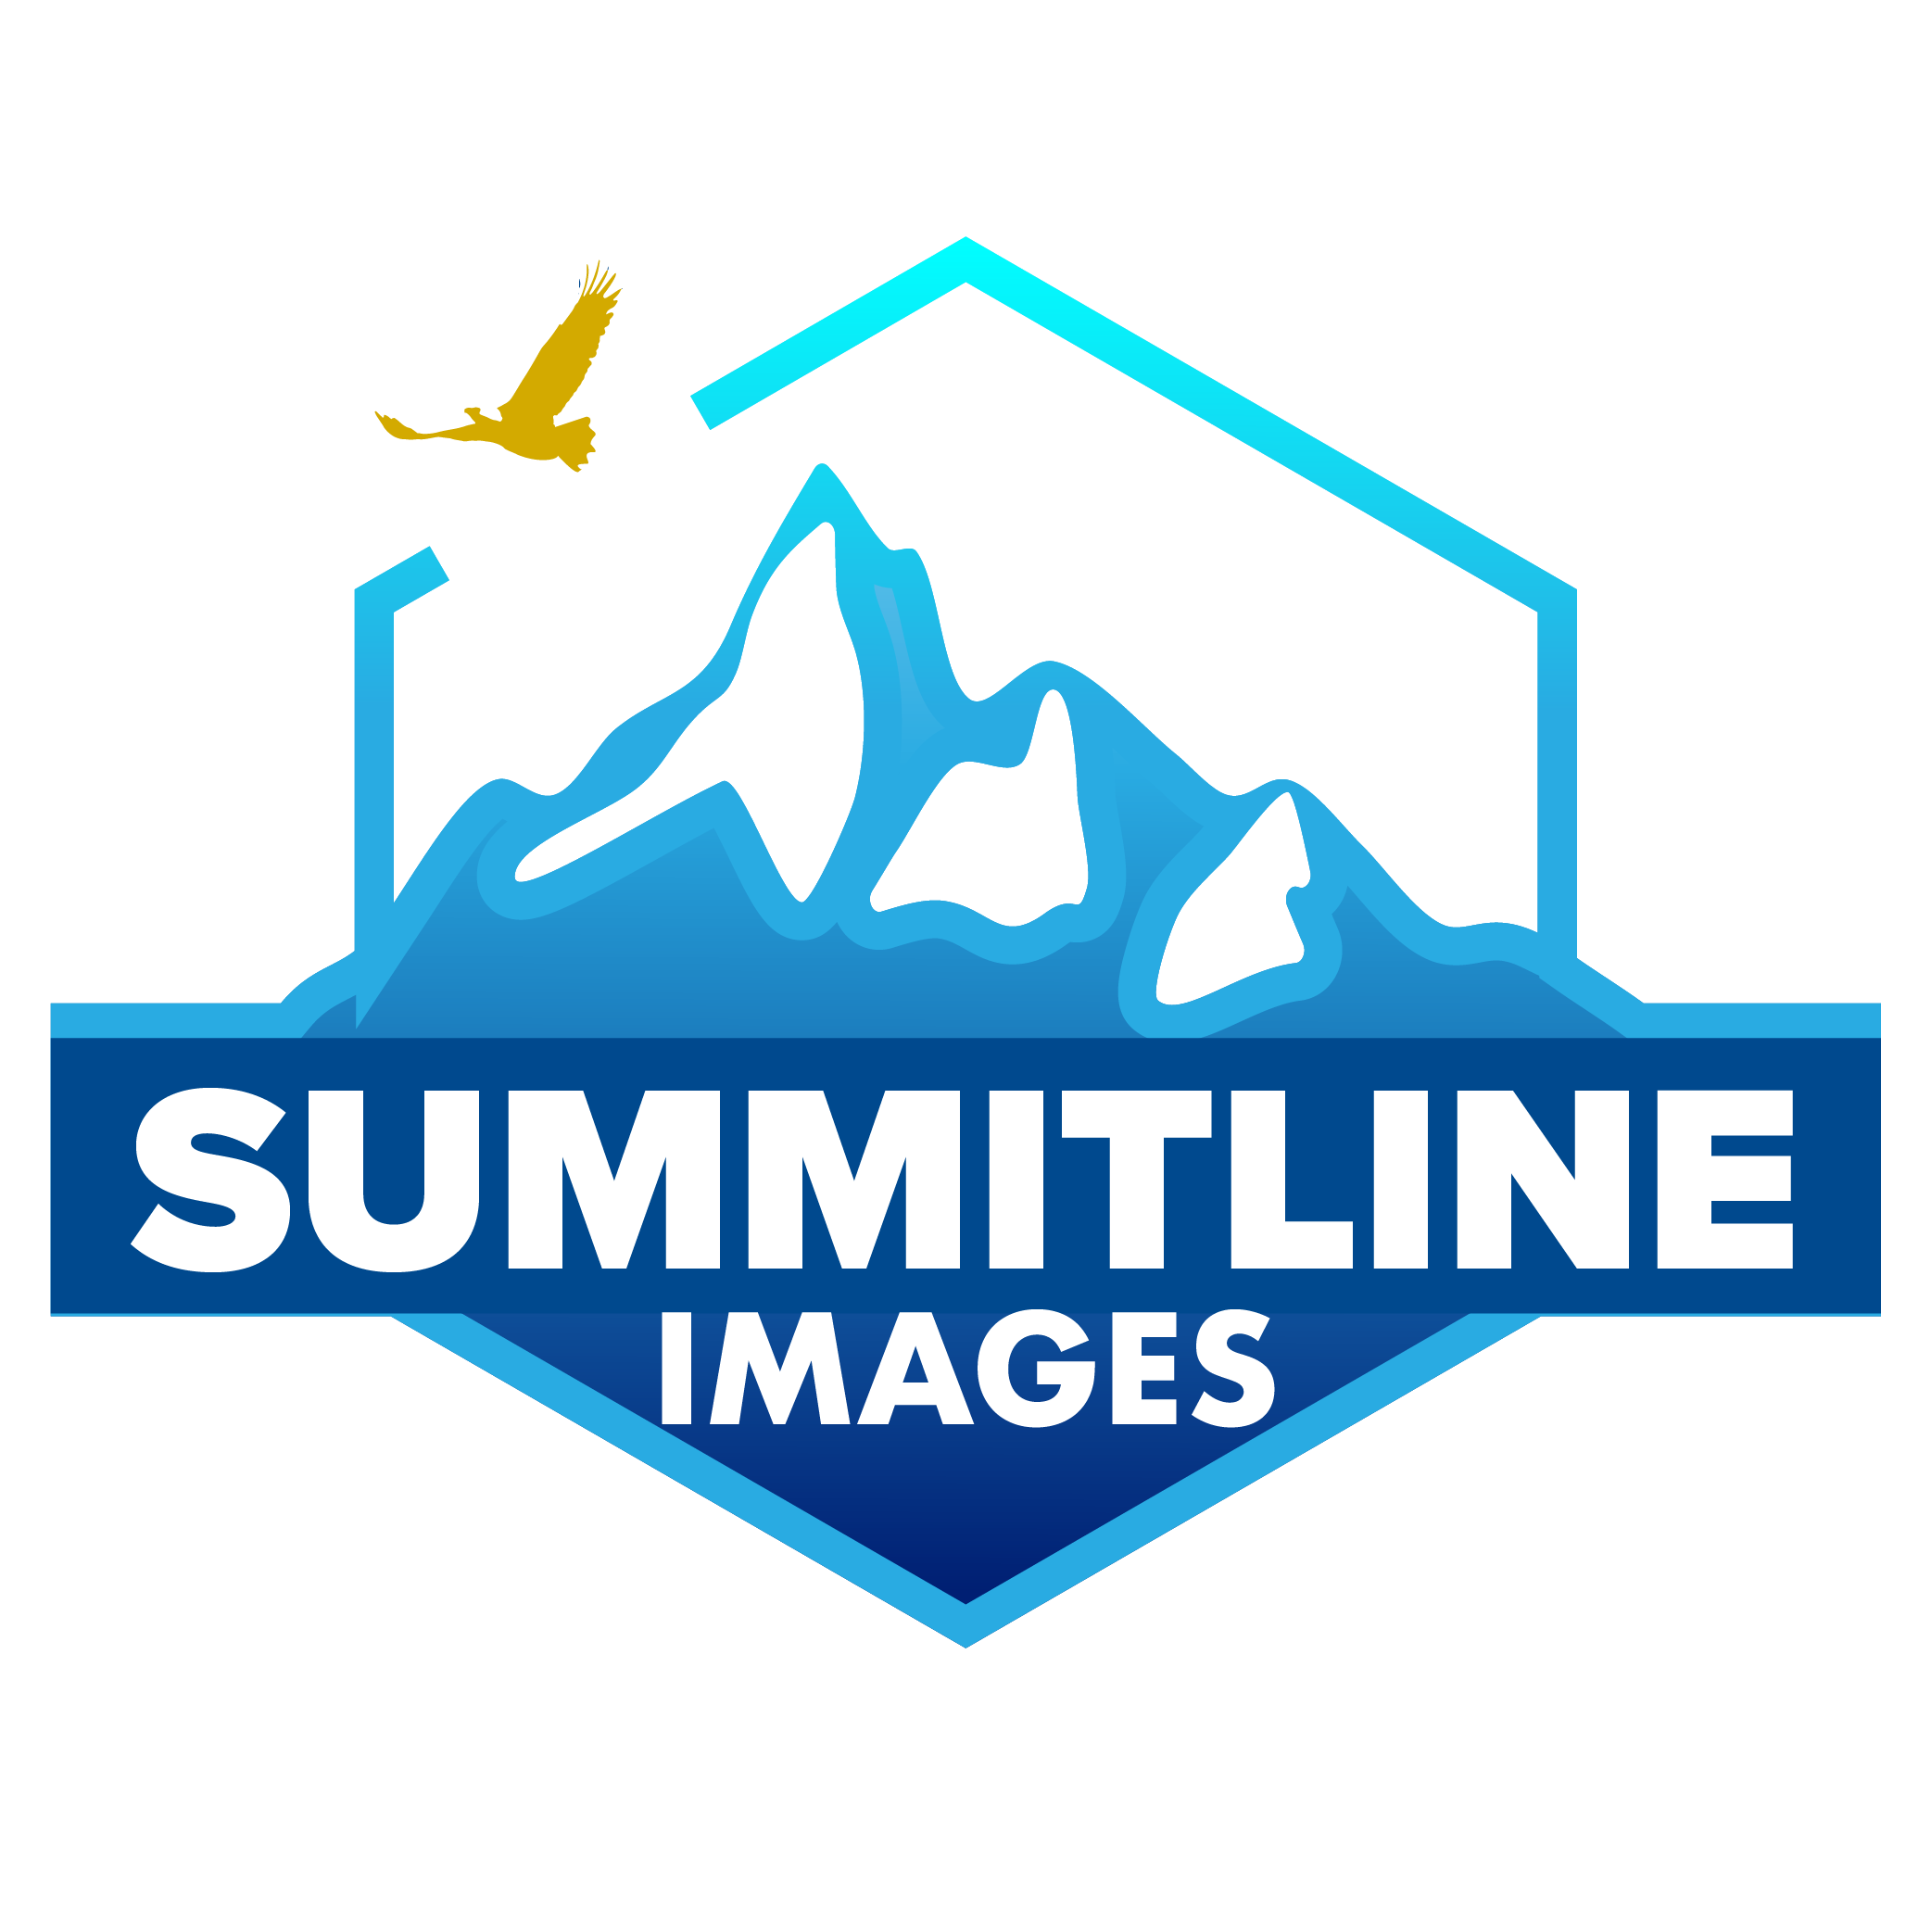 Summitline Images